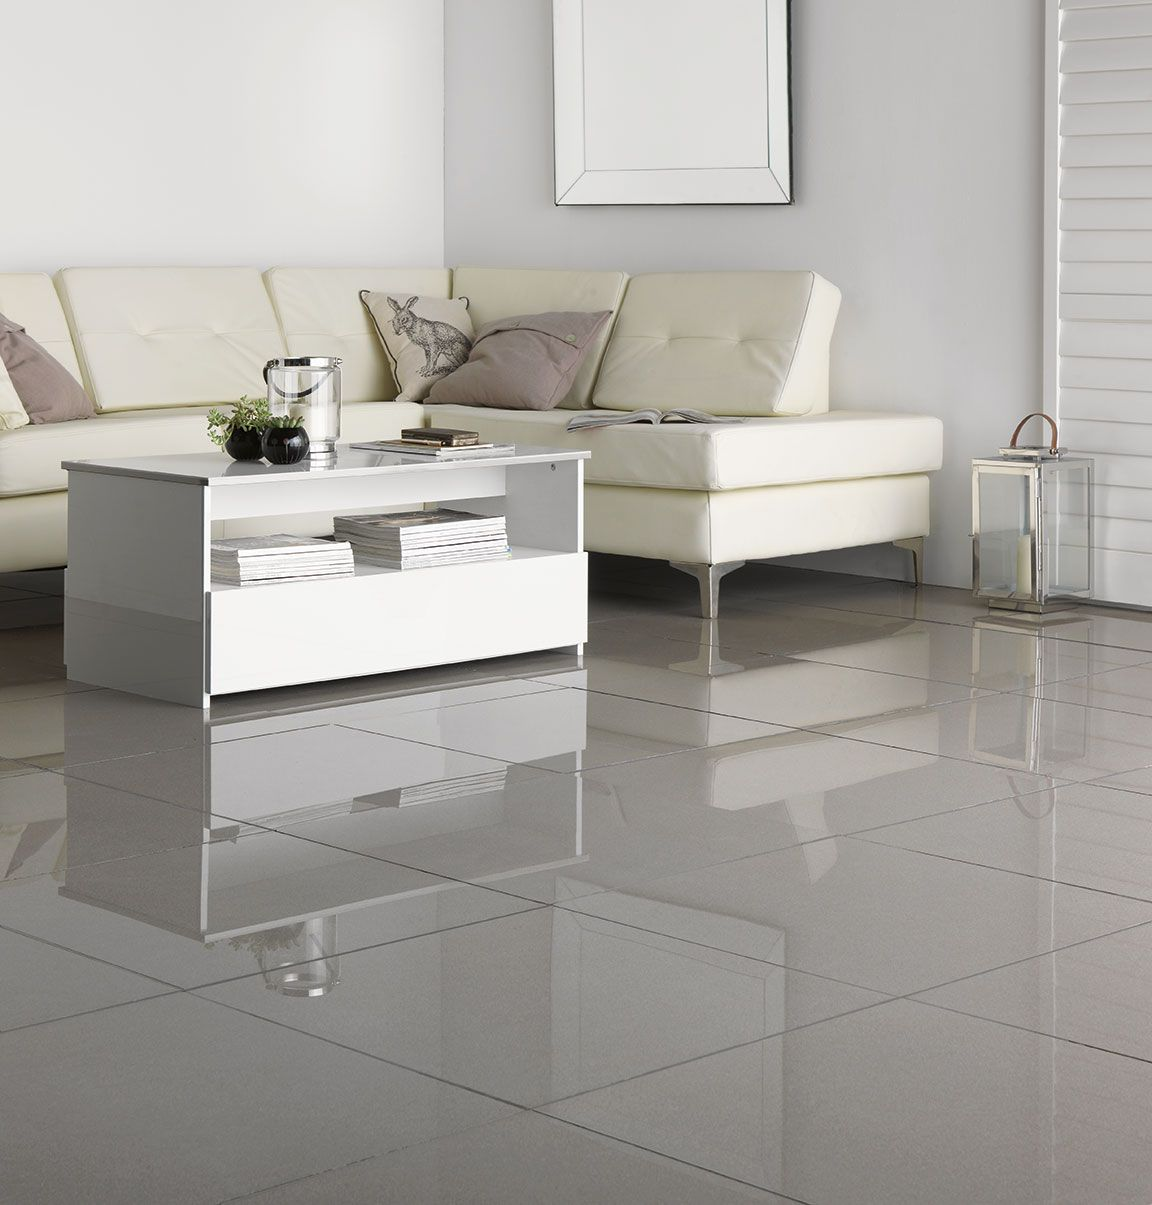 Polished Porcelain Grey Wall Tile 60 X 60cm Tile